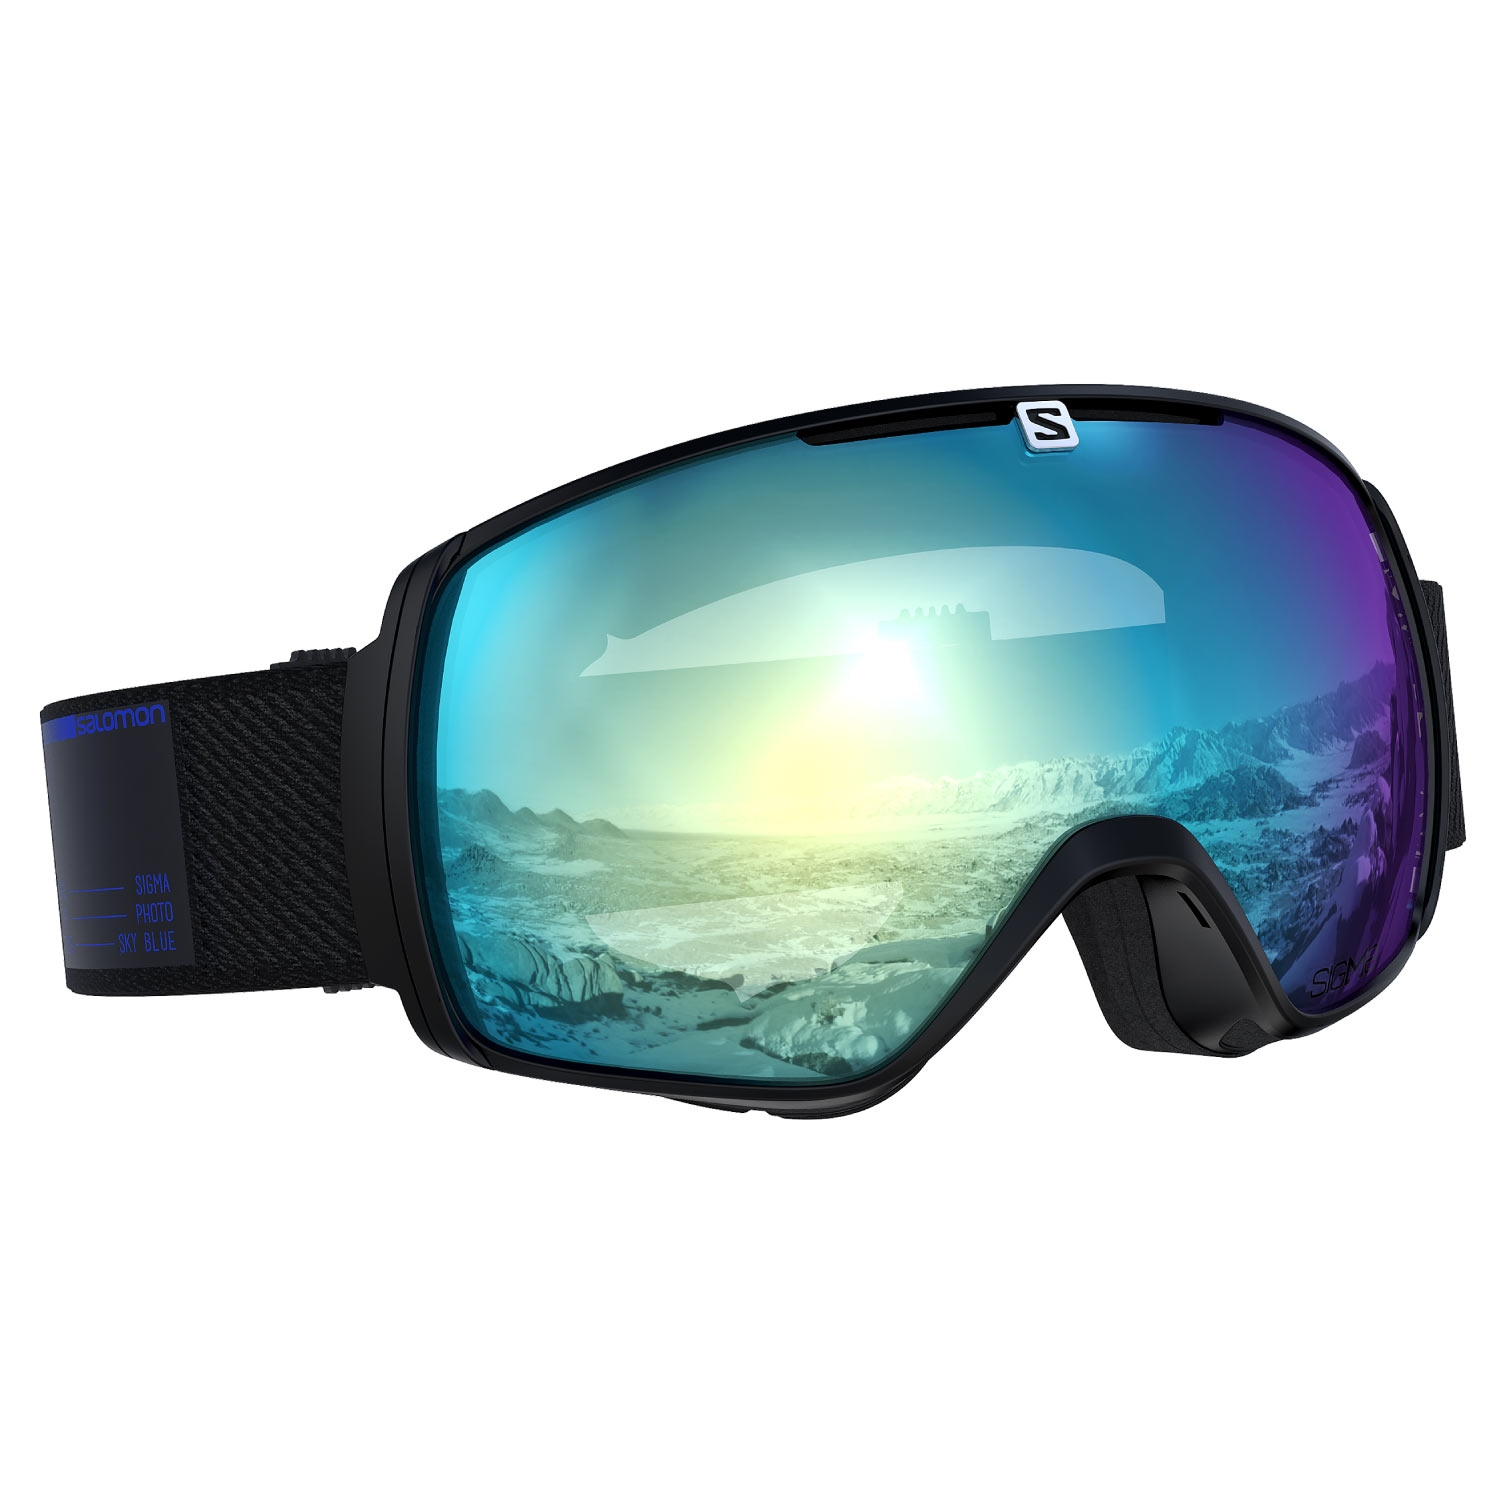 Salomon XT One Photo Sigma Goggles Black/All Weather Sky Blue Lens 2021